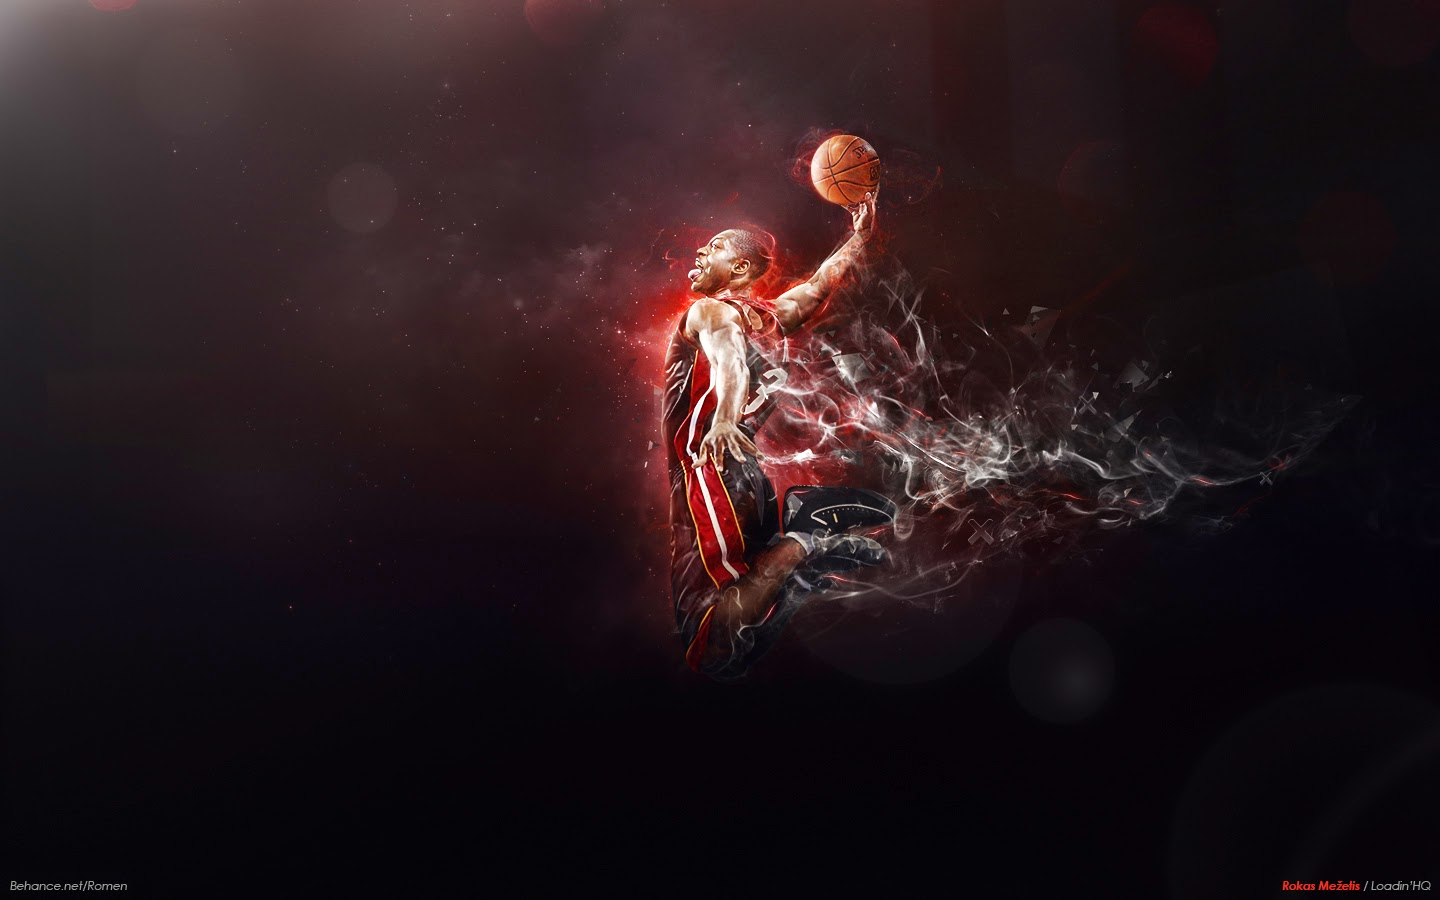 Wallpapers Dwyane Wade NBA HD   Fondos De pantallasWallpaper 1440x900